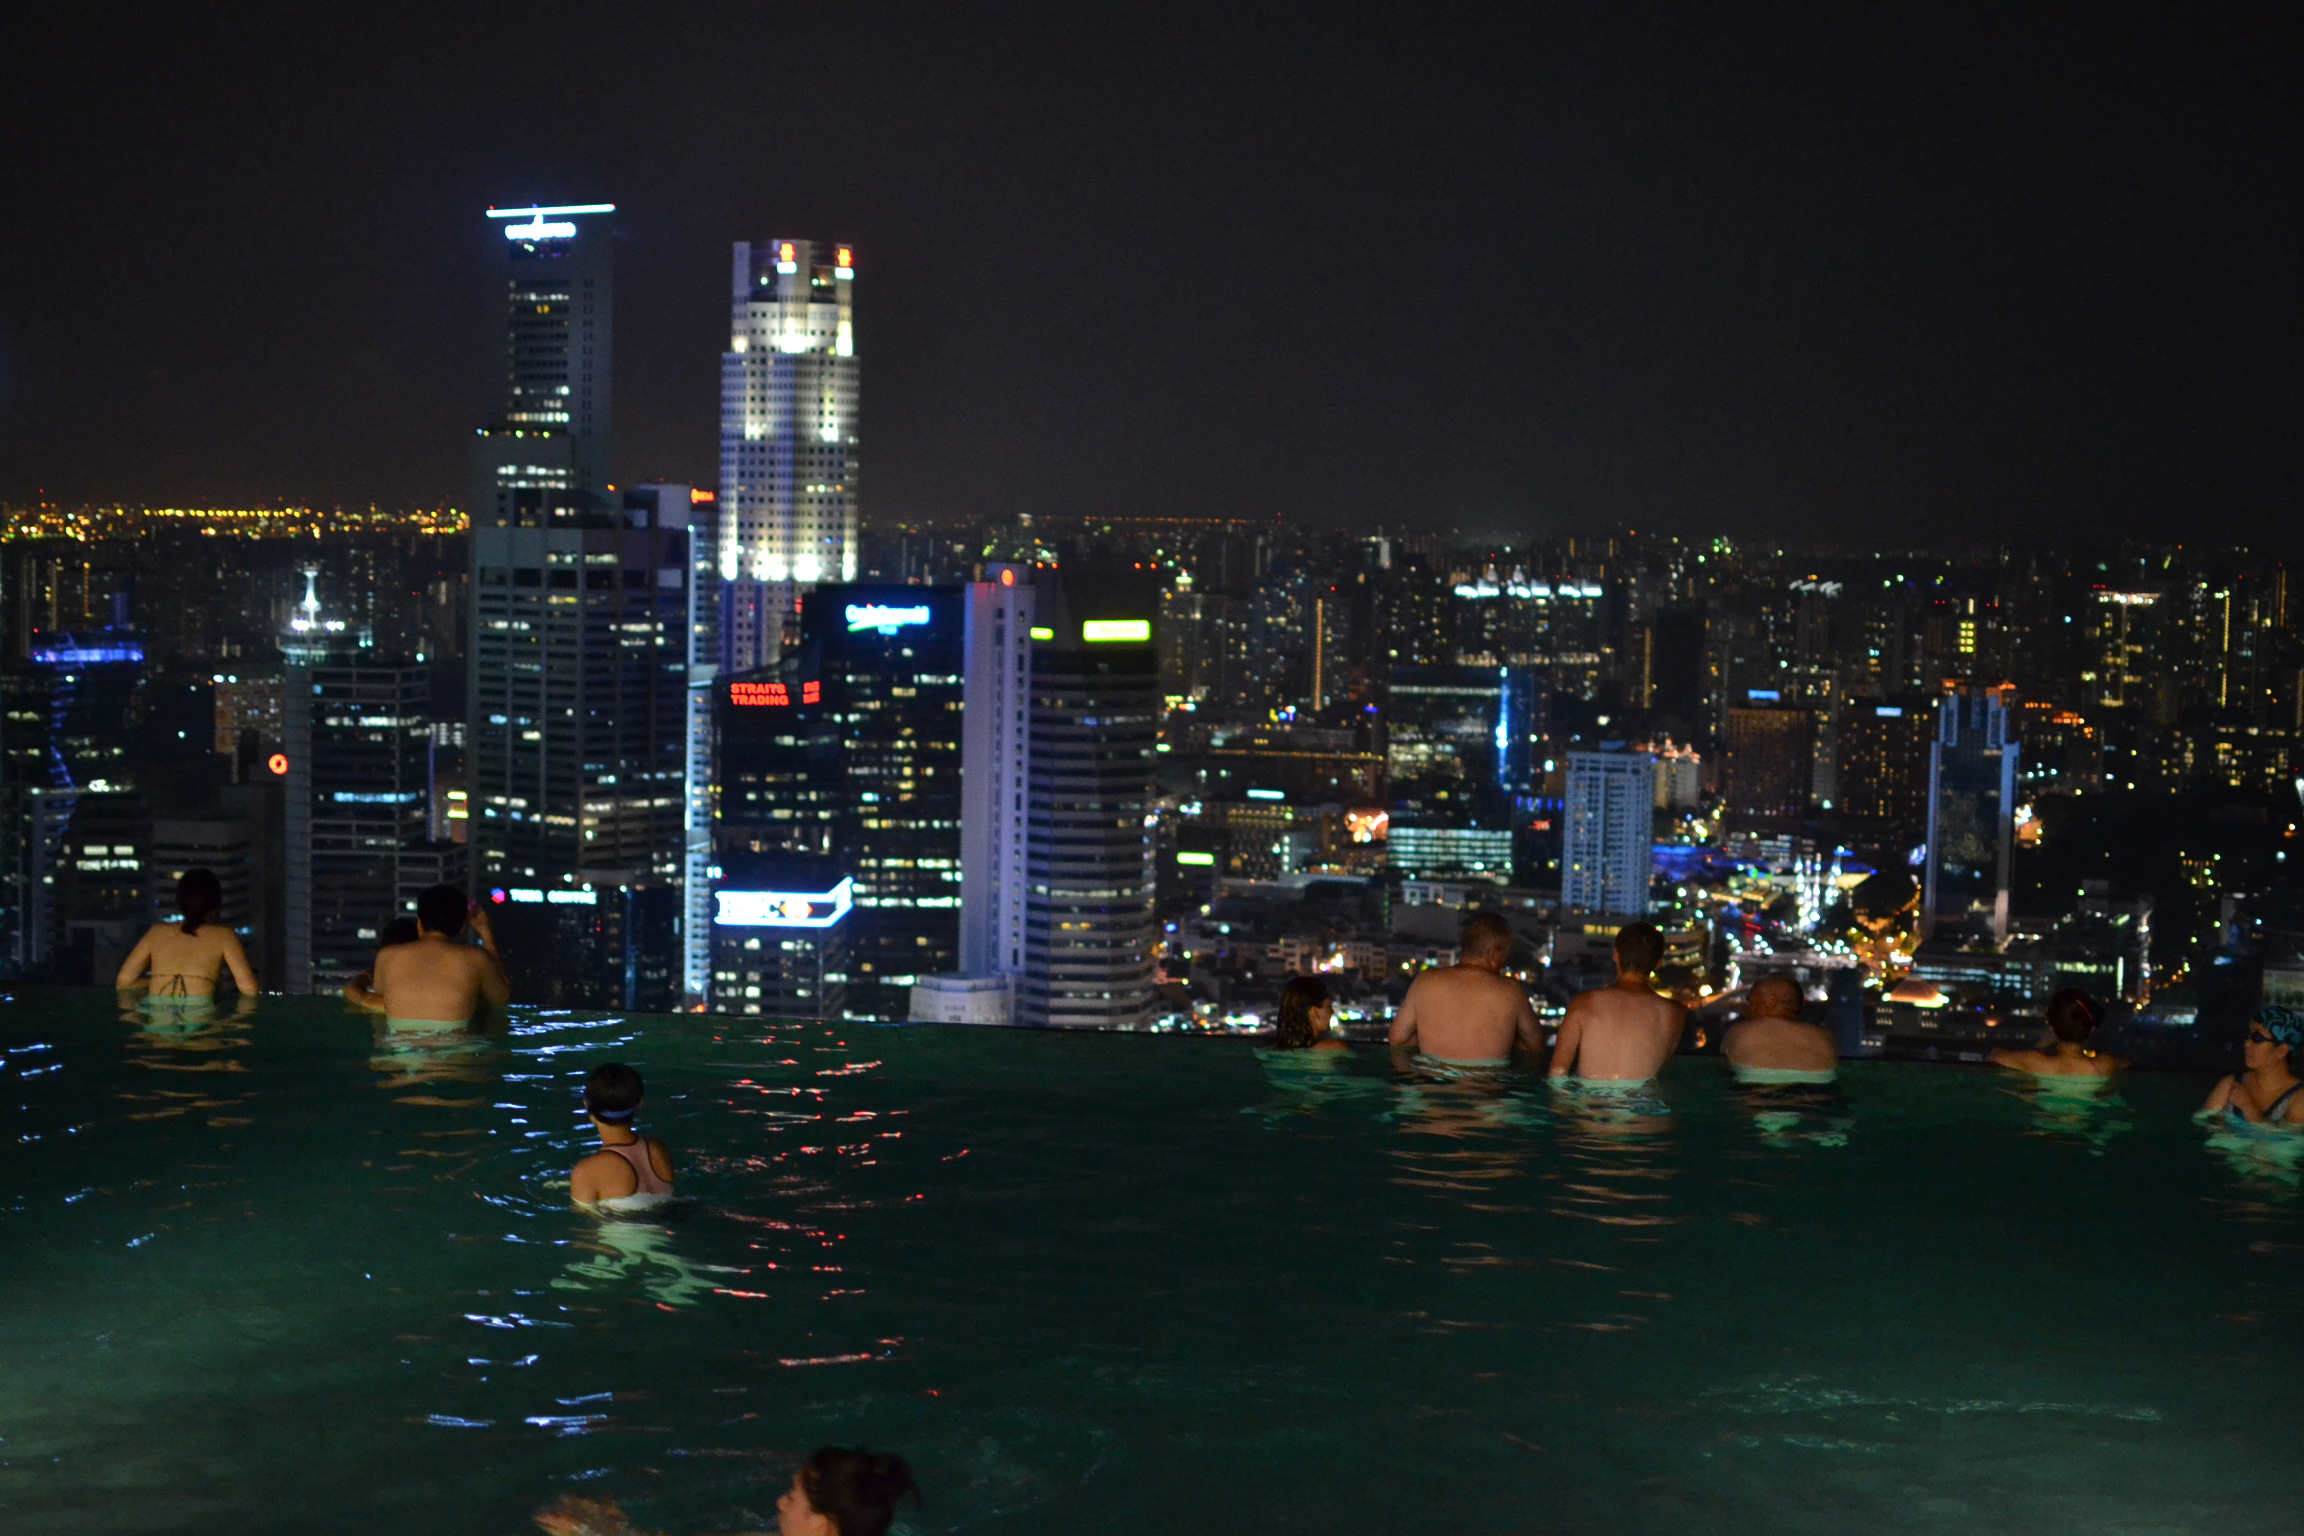 Marina Bay Sands Skypark Infinity Pool